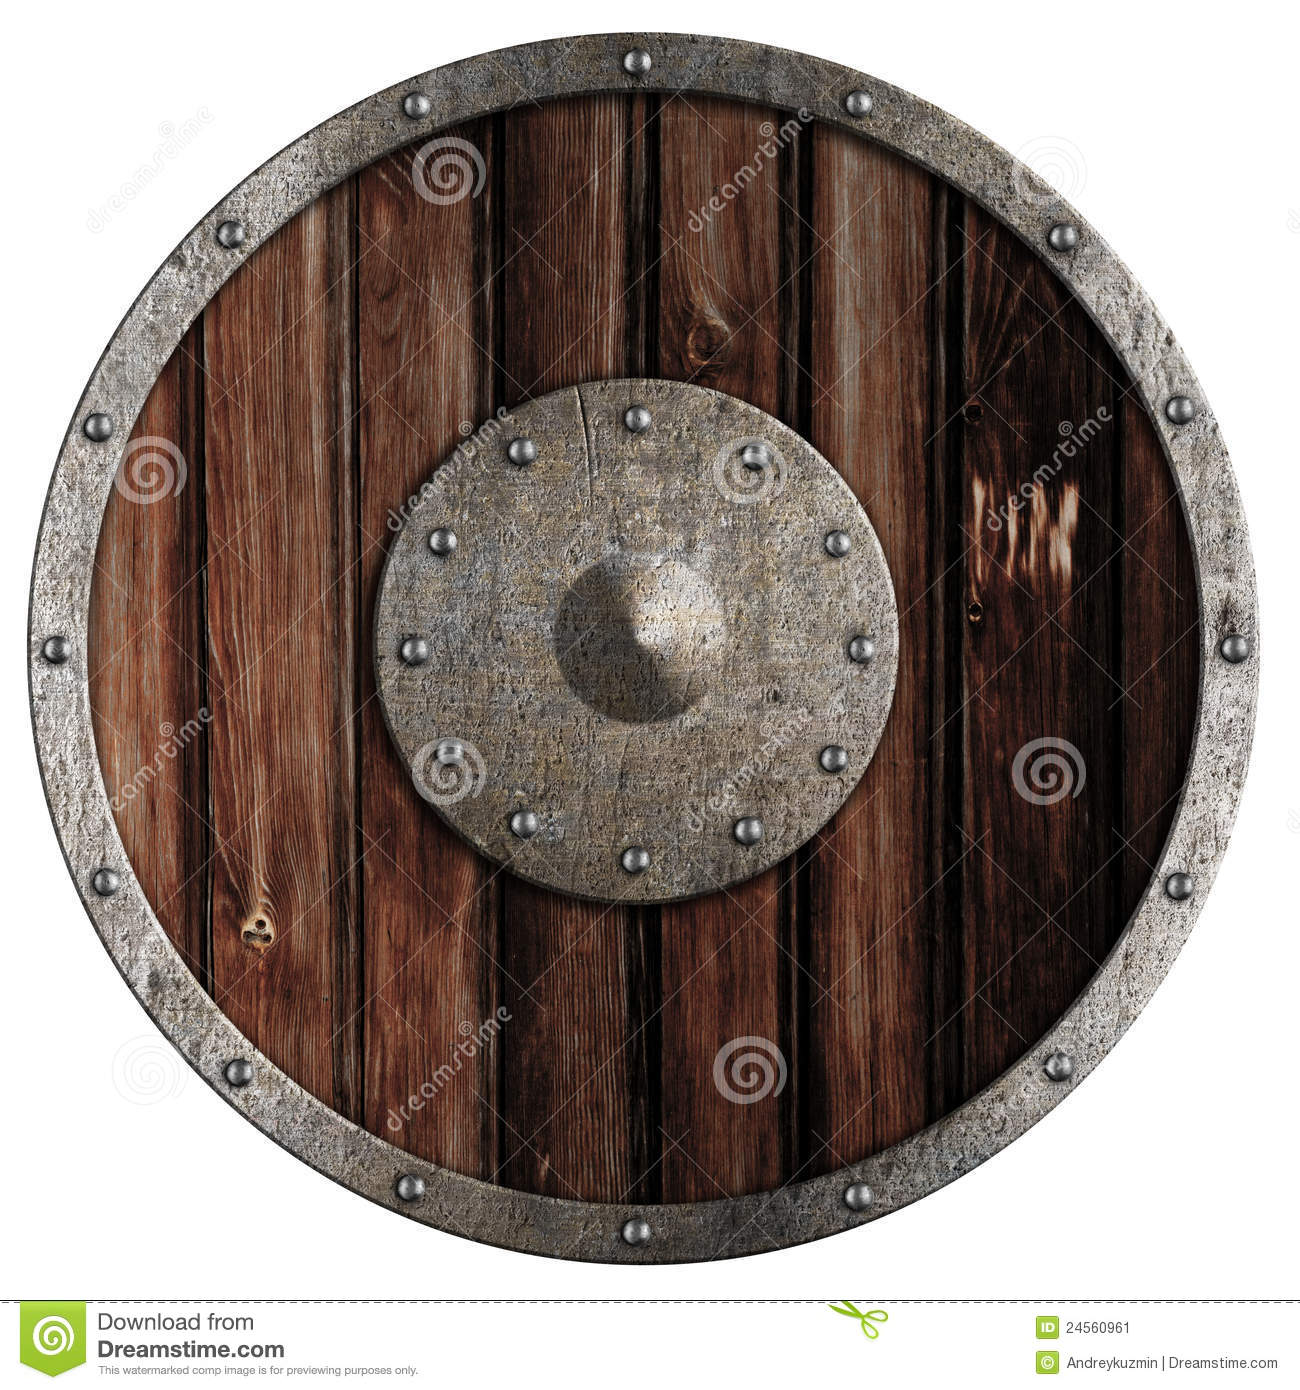 Old Viking Wooden Shield Isolated Stock Image - Image: 24560961